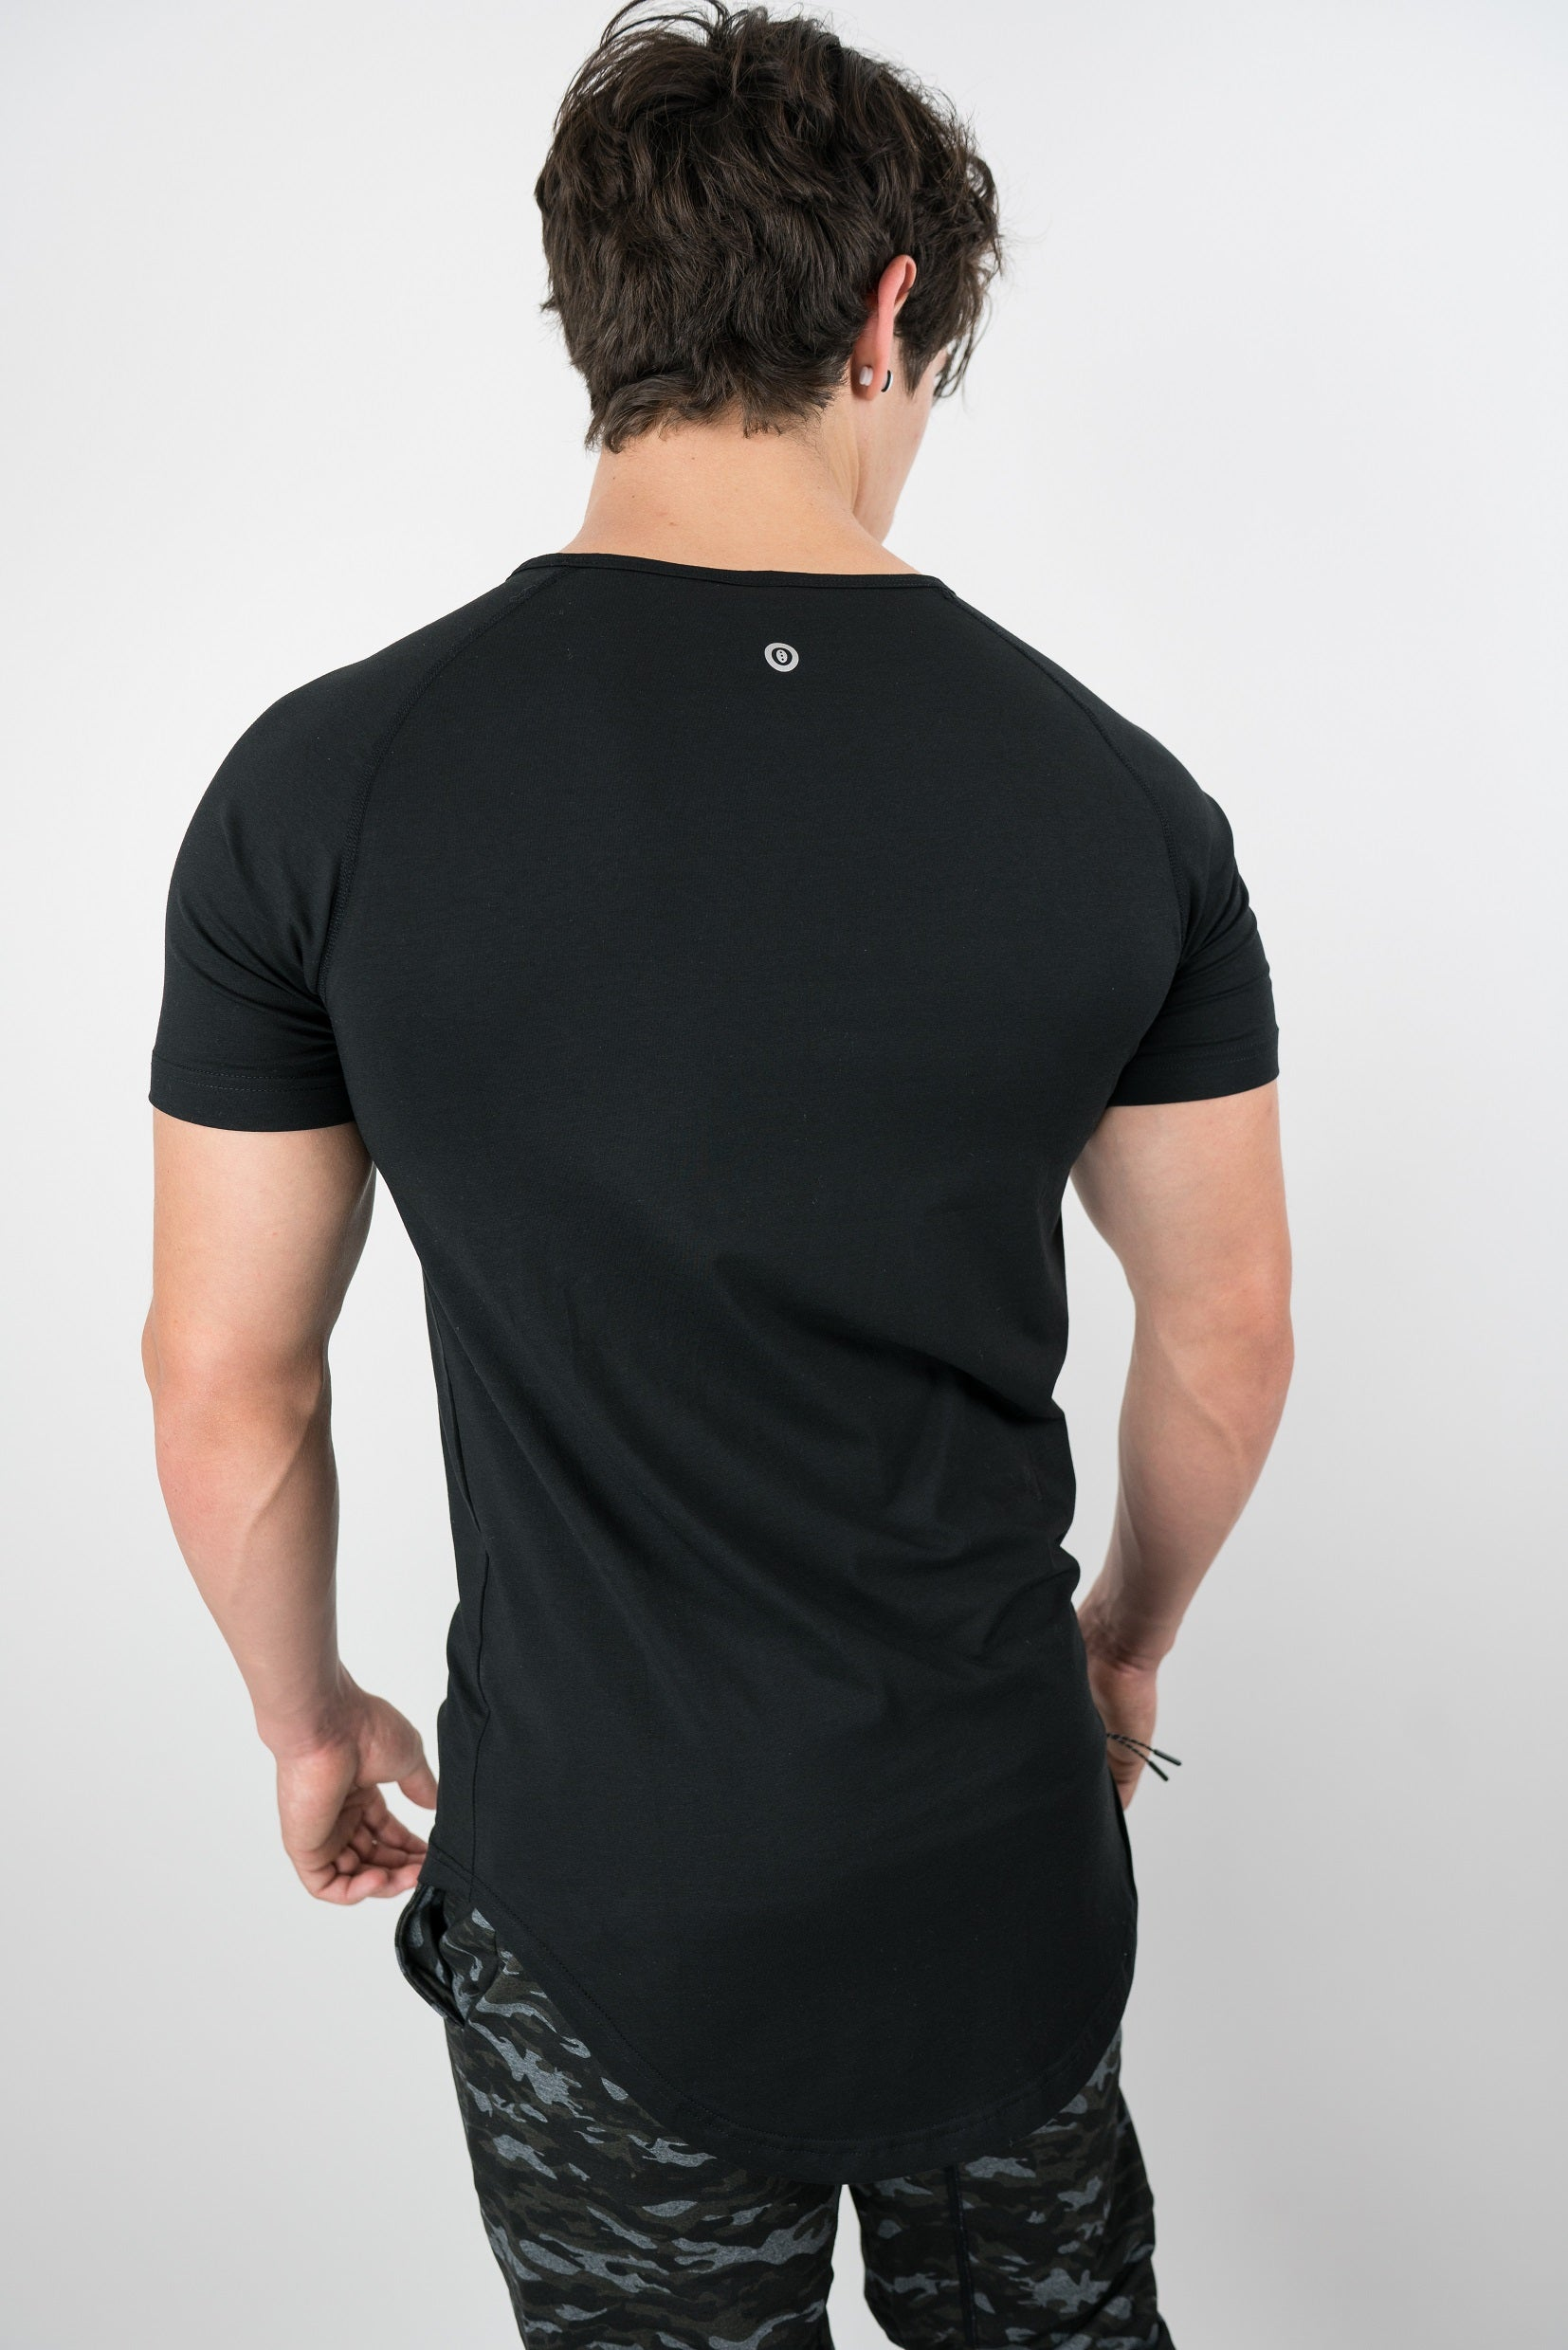 Adapt Performance Shirt